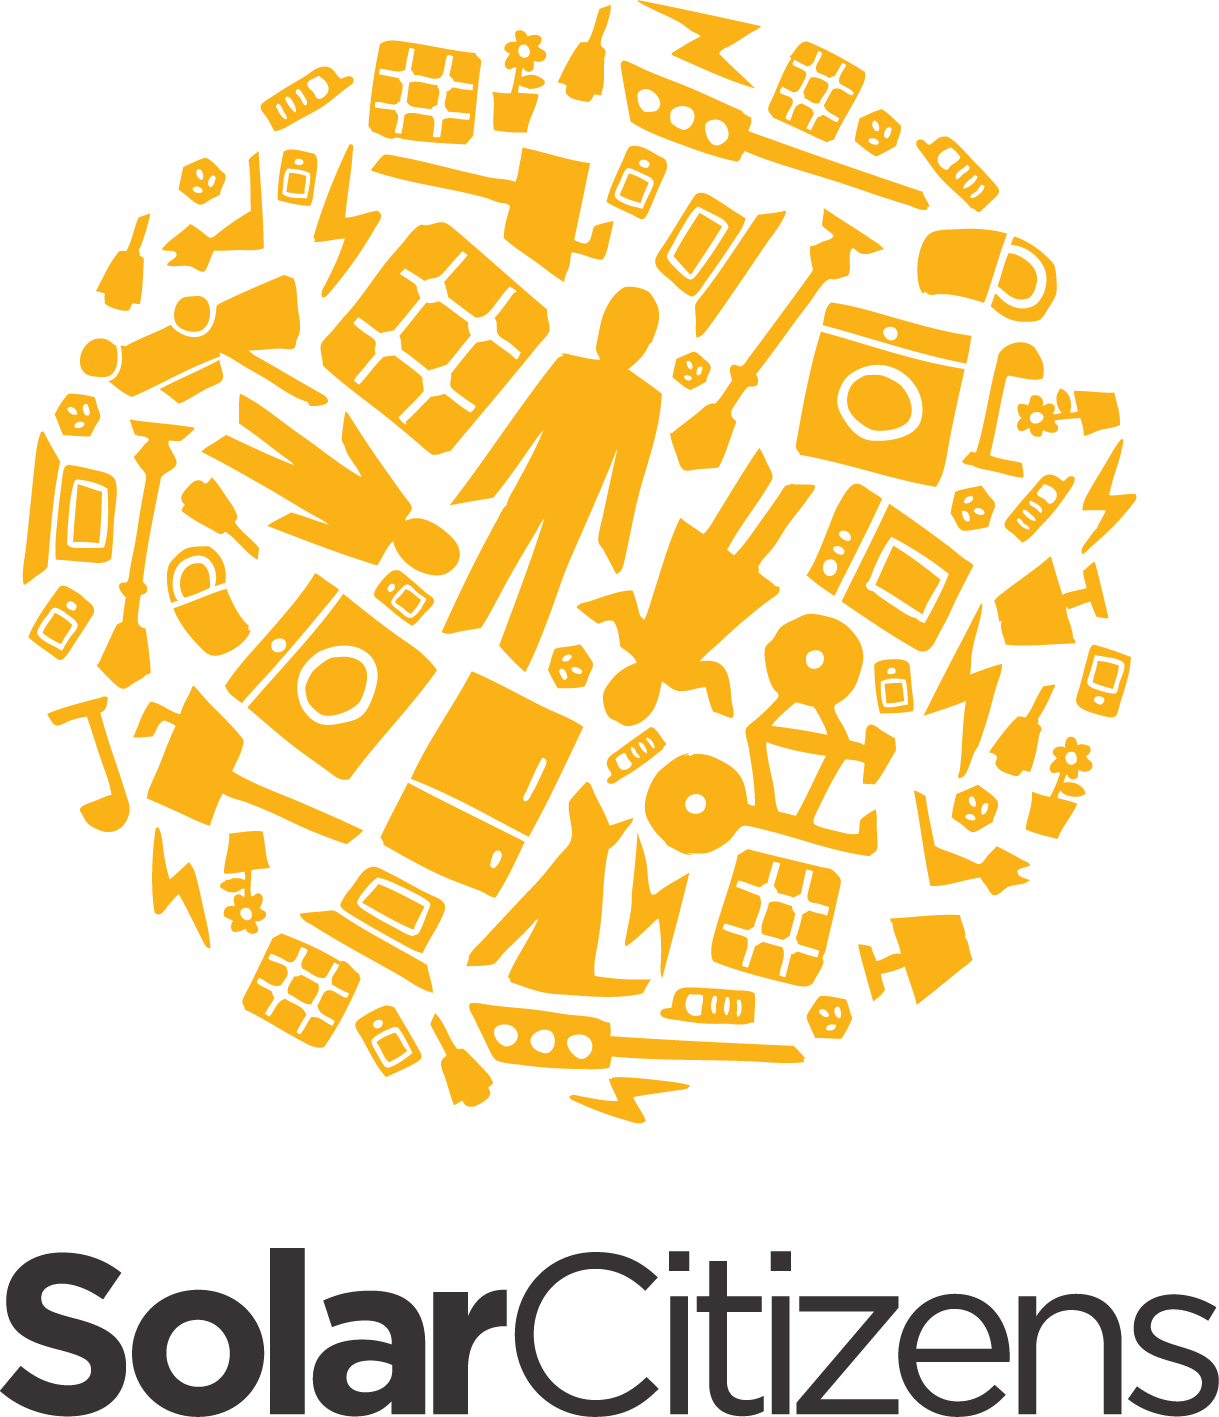 solar-citizens-stacked-logo.png